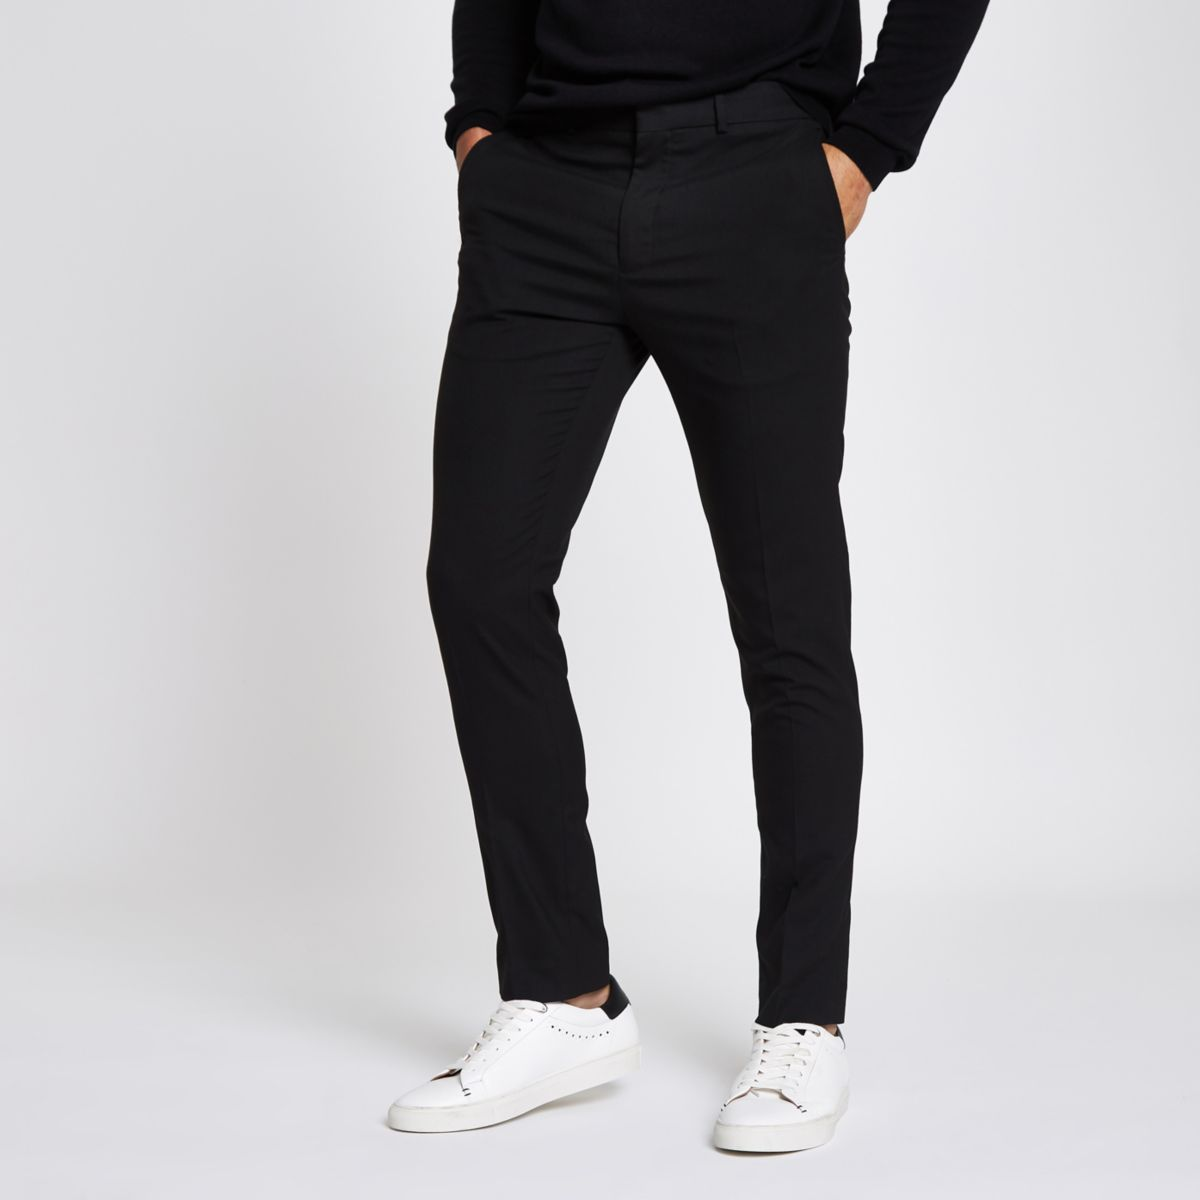 s2w6s5q3to.gq: summer smart trousers male. From The Community. Amazon Try Prime All m and s white trousers blue smart trousers womens black high waisted vermers Mens Leisure Pants - Mens Fashion Trousers Casual Letter Printed Sweatpants. by vermers. $ - $ $ 0 $ 11